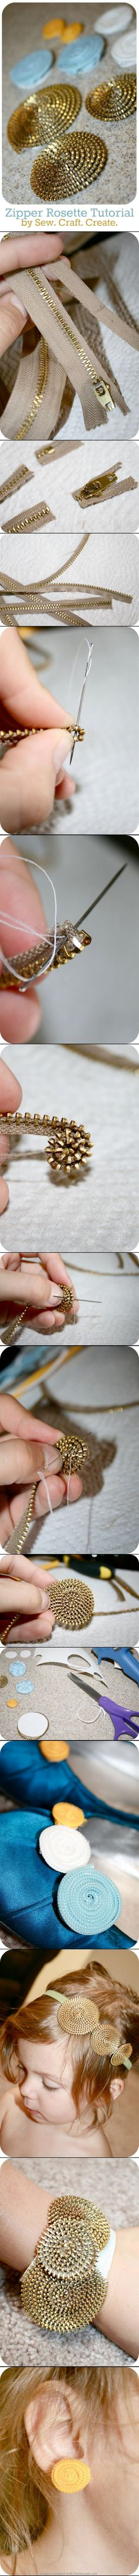 Zipper Rosette Tutorial #DIY #bracelet #headband #jewelry